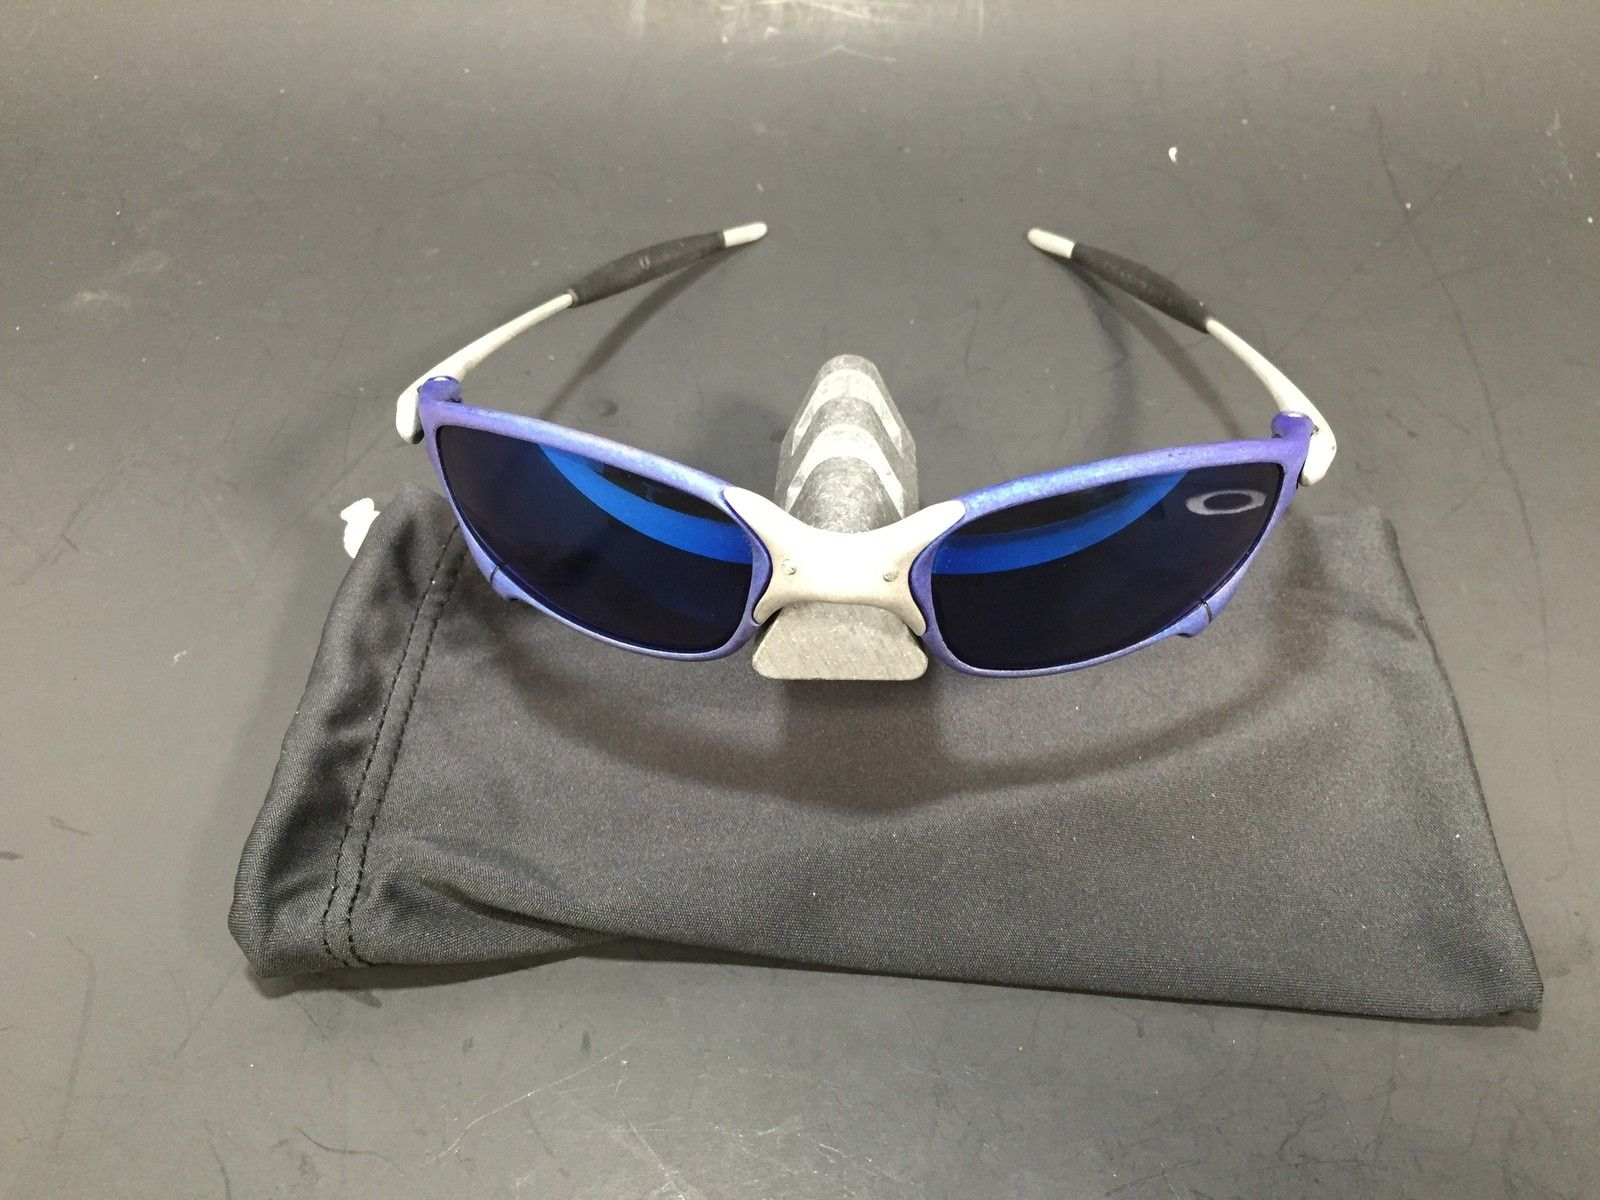 Anodized Juliet Dallas Cowboys colors Blue/Silver w/ OEM Ice Lenses - IMG_1775.JPG